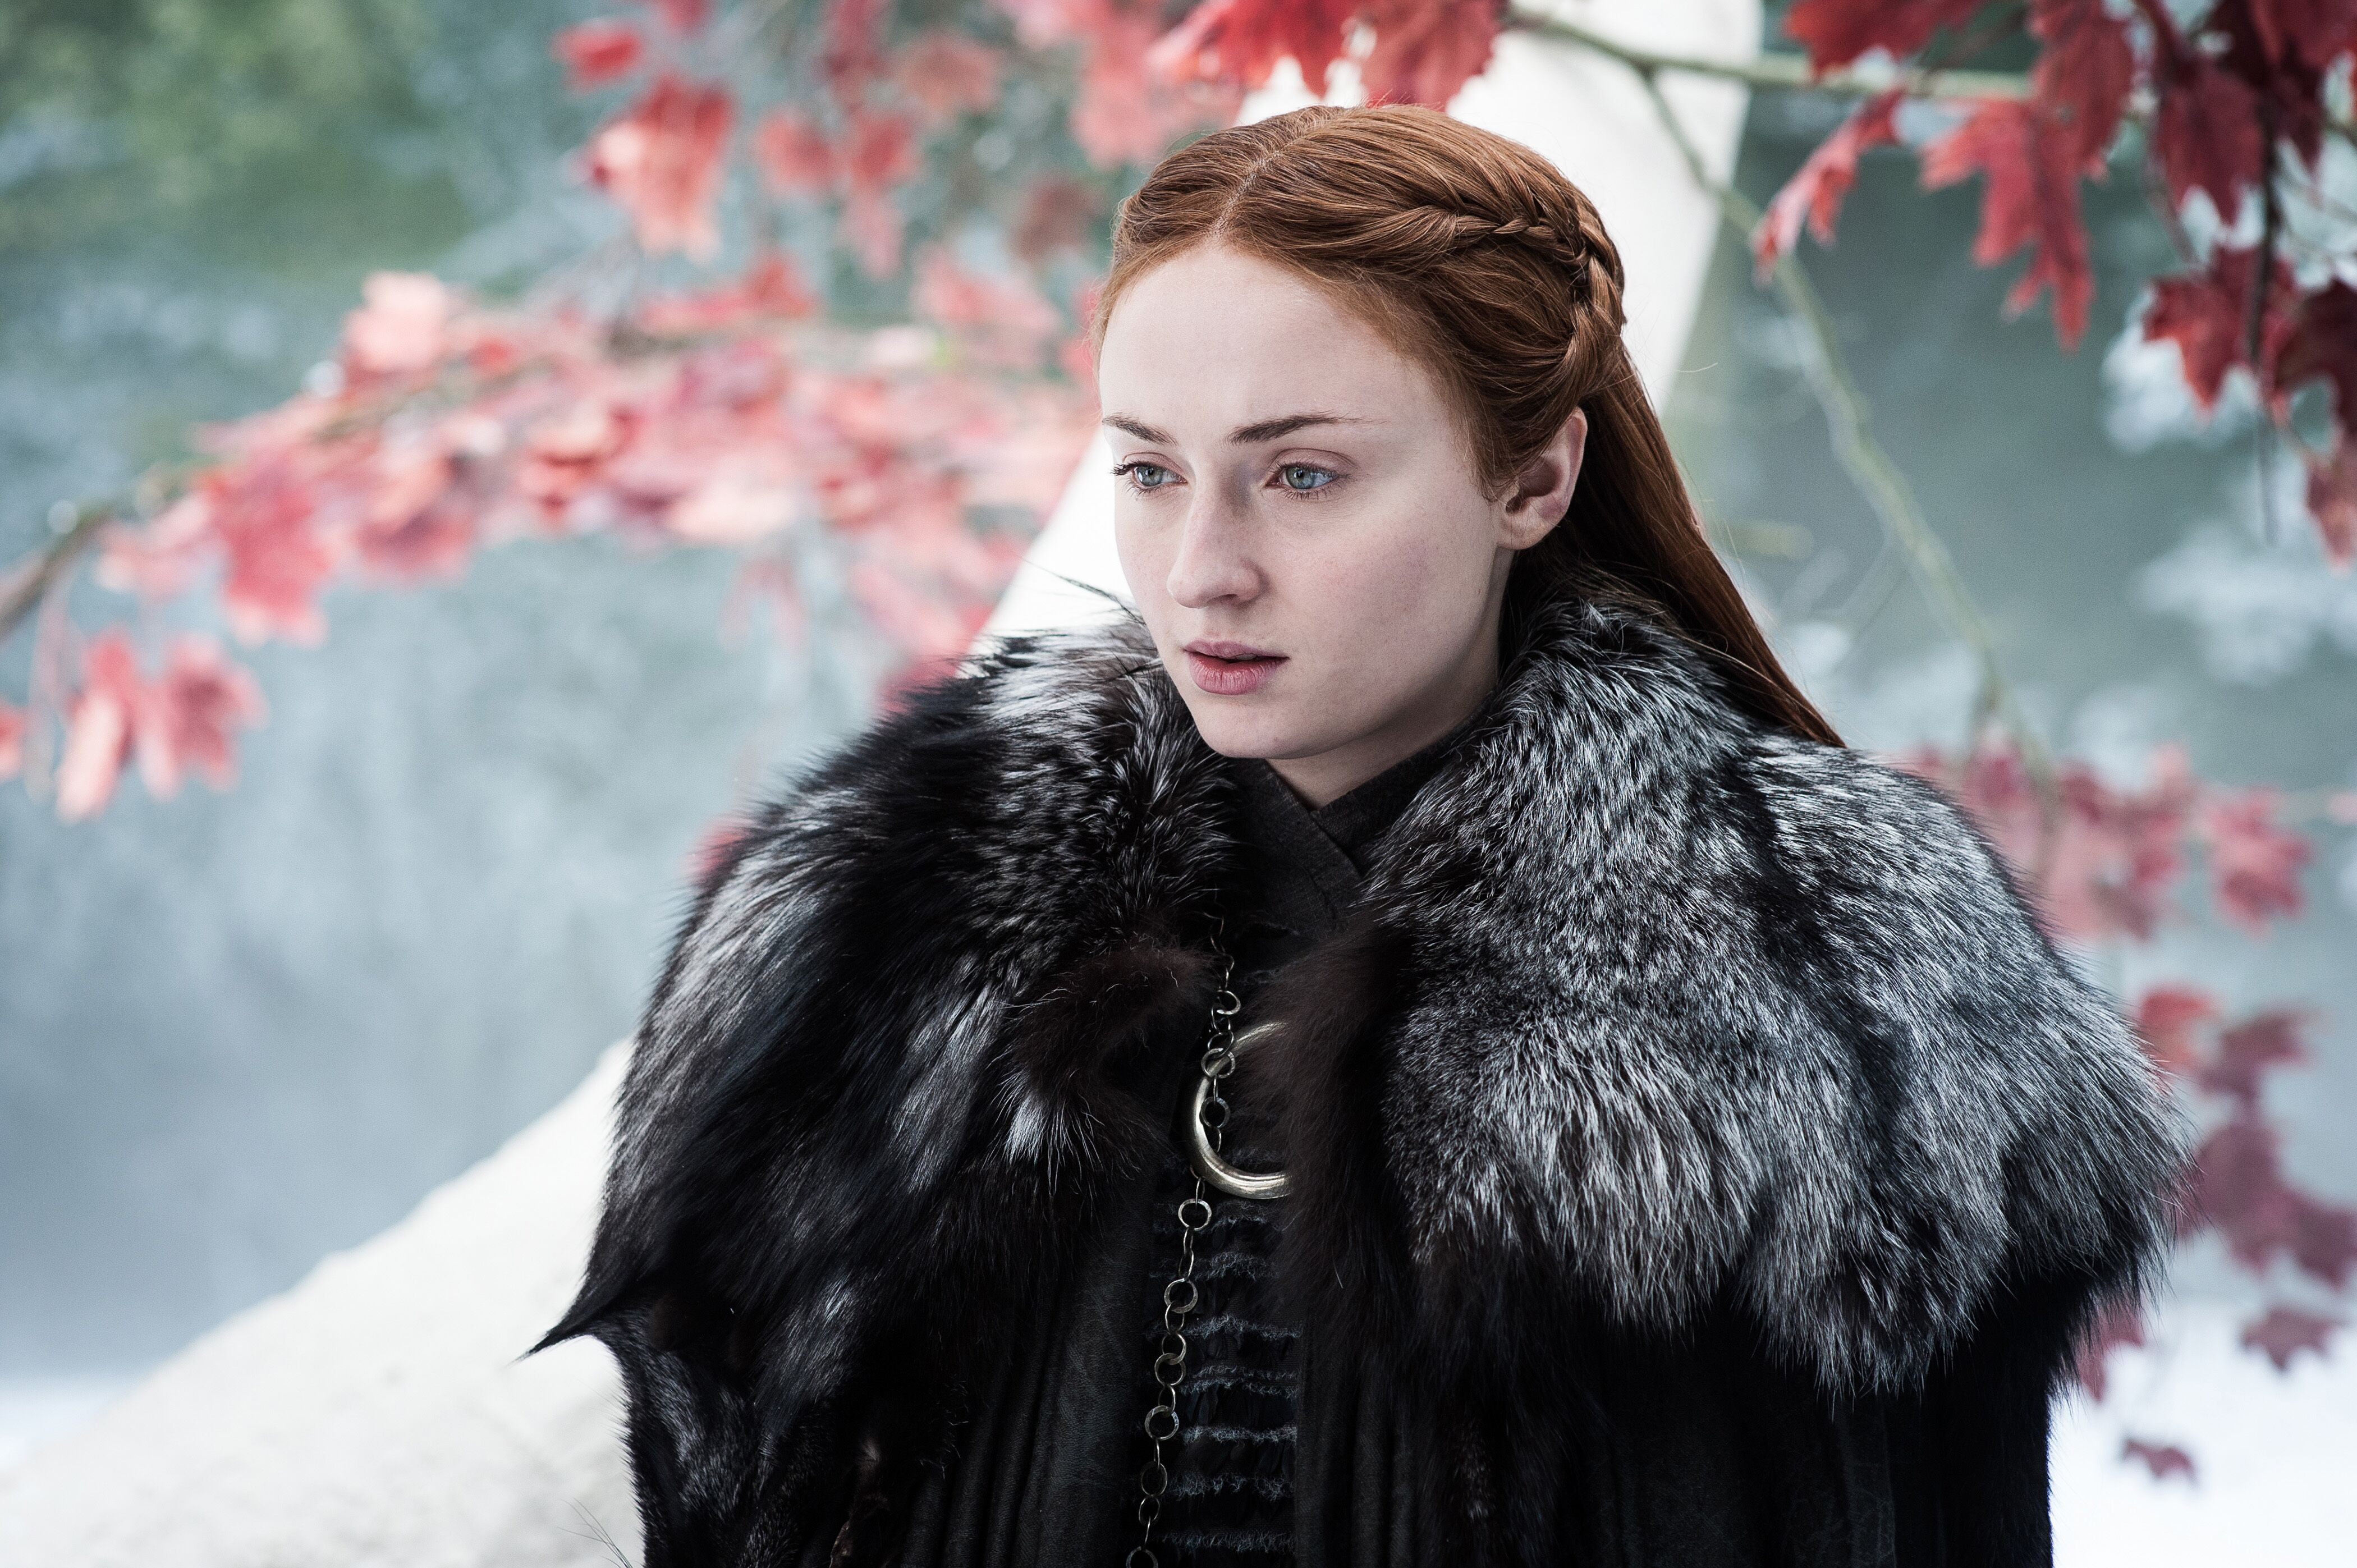 Game of Thrones finale: 3 predictions for Sansa Stark